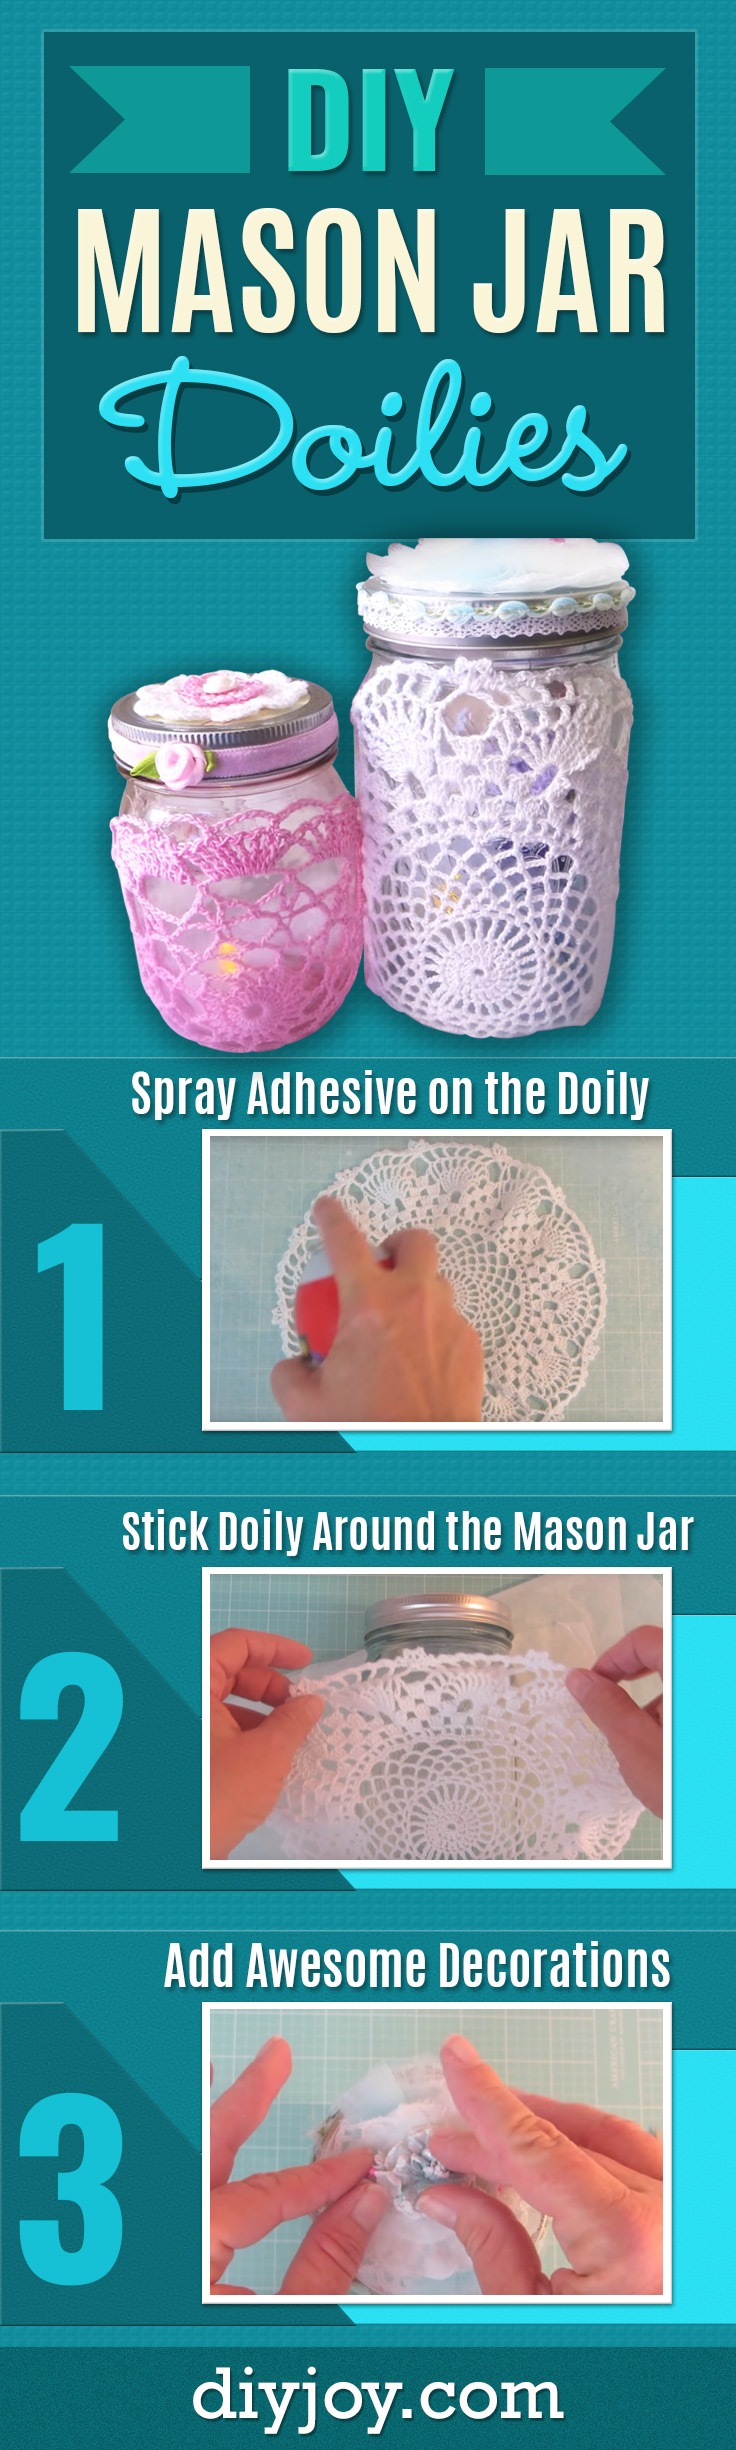 DIY Mothers Day Gift Ideas - Mason Jar Doilies - Homemade Gifts for Moms - Crafts and Do It Yourself Home Decor, Accessories and Fashion To Make For Mom - Mothers Love Handmade Presents on Mother's Day - DIY Projects and Crafts by DIY JOY